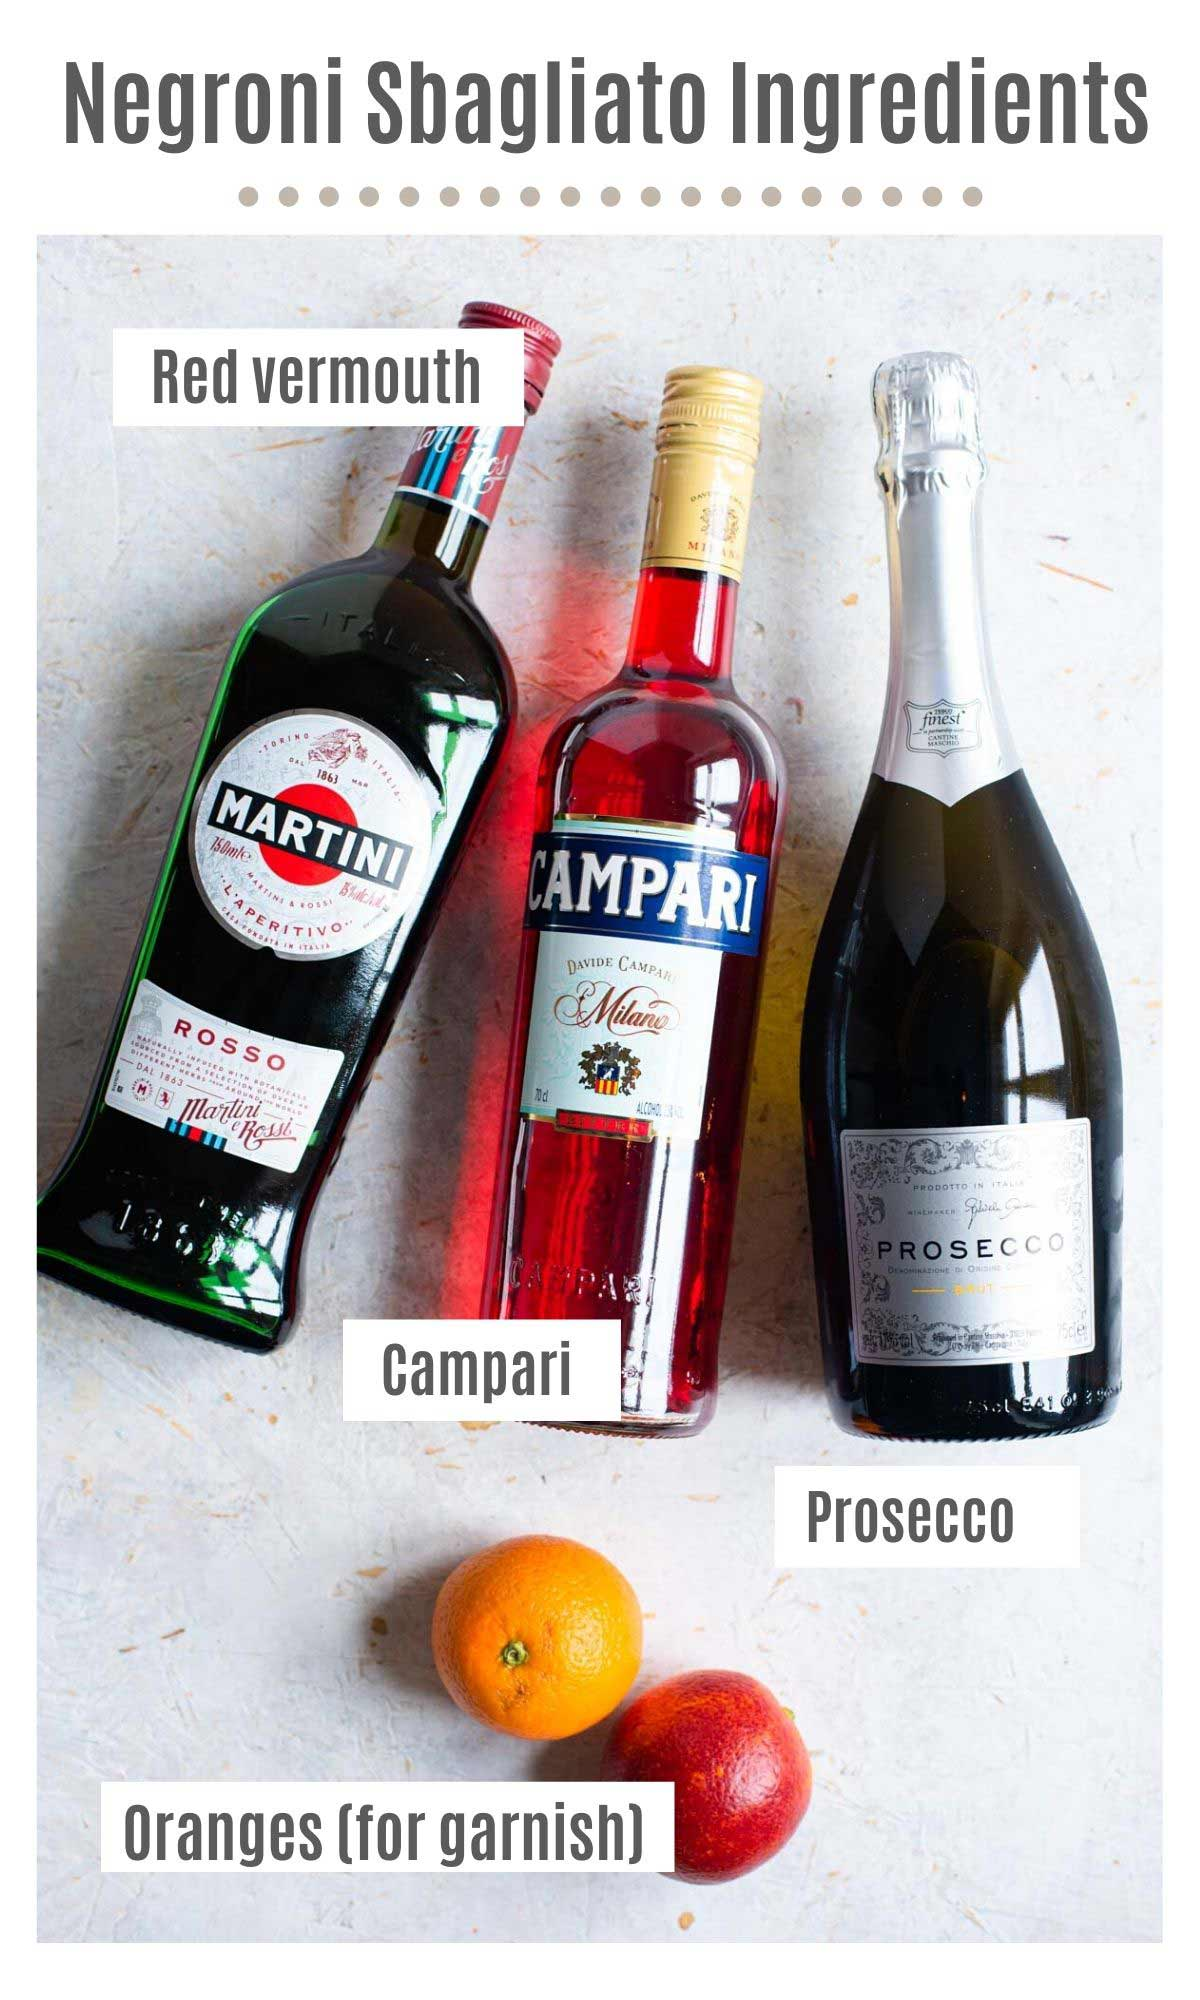 An overhead shot of all the ingredients you need to make a Negroni Sbagliato